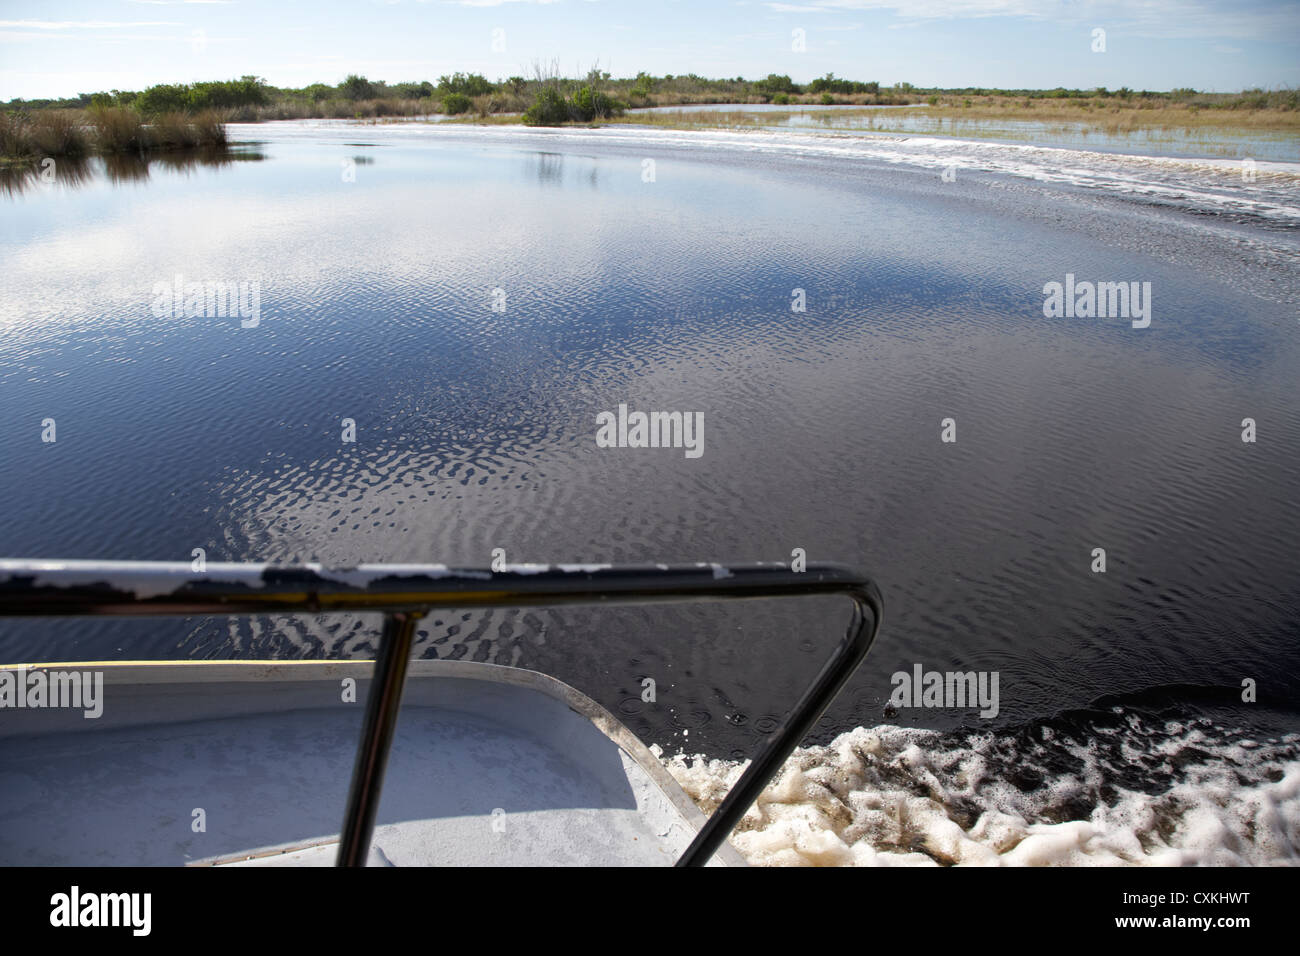 on board an airboat ride with boat wake in the grasslands everglades city florida everglades usa - Stock Image